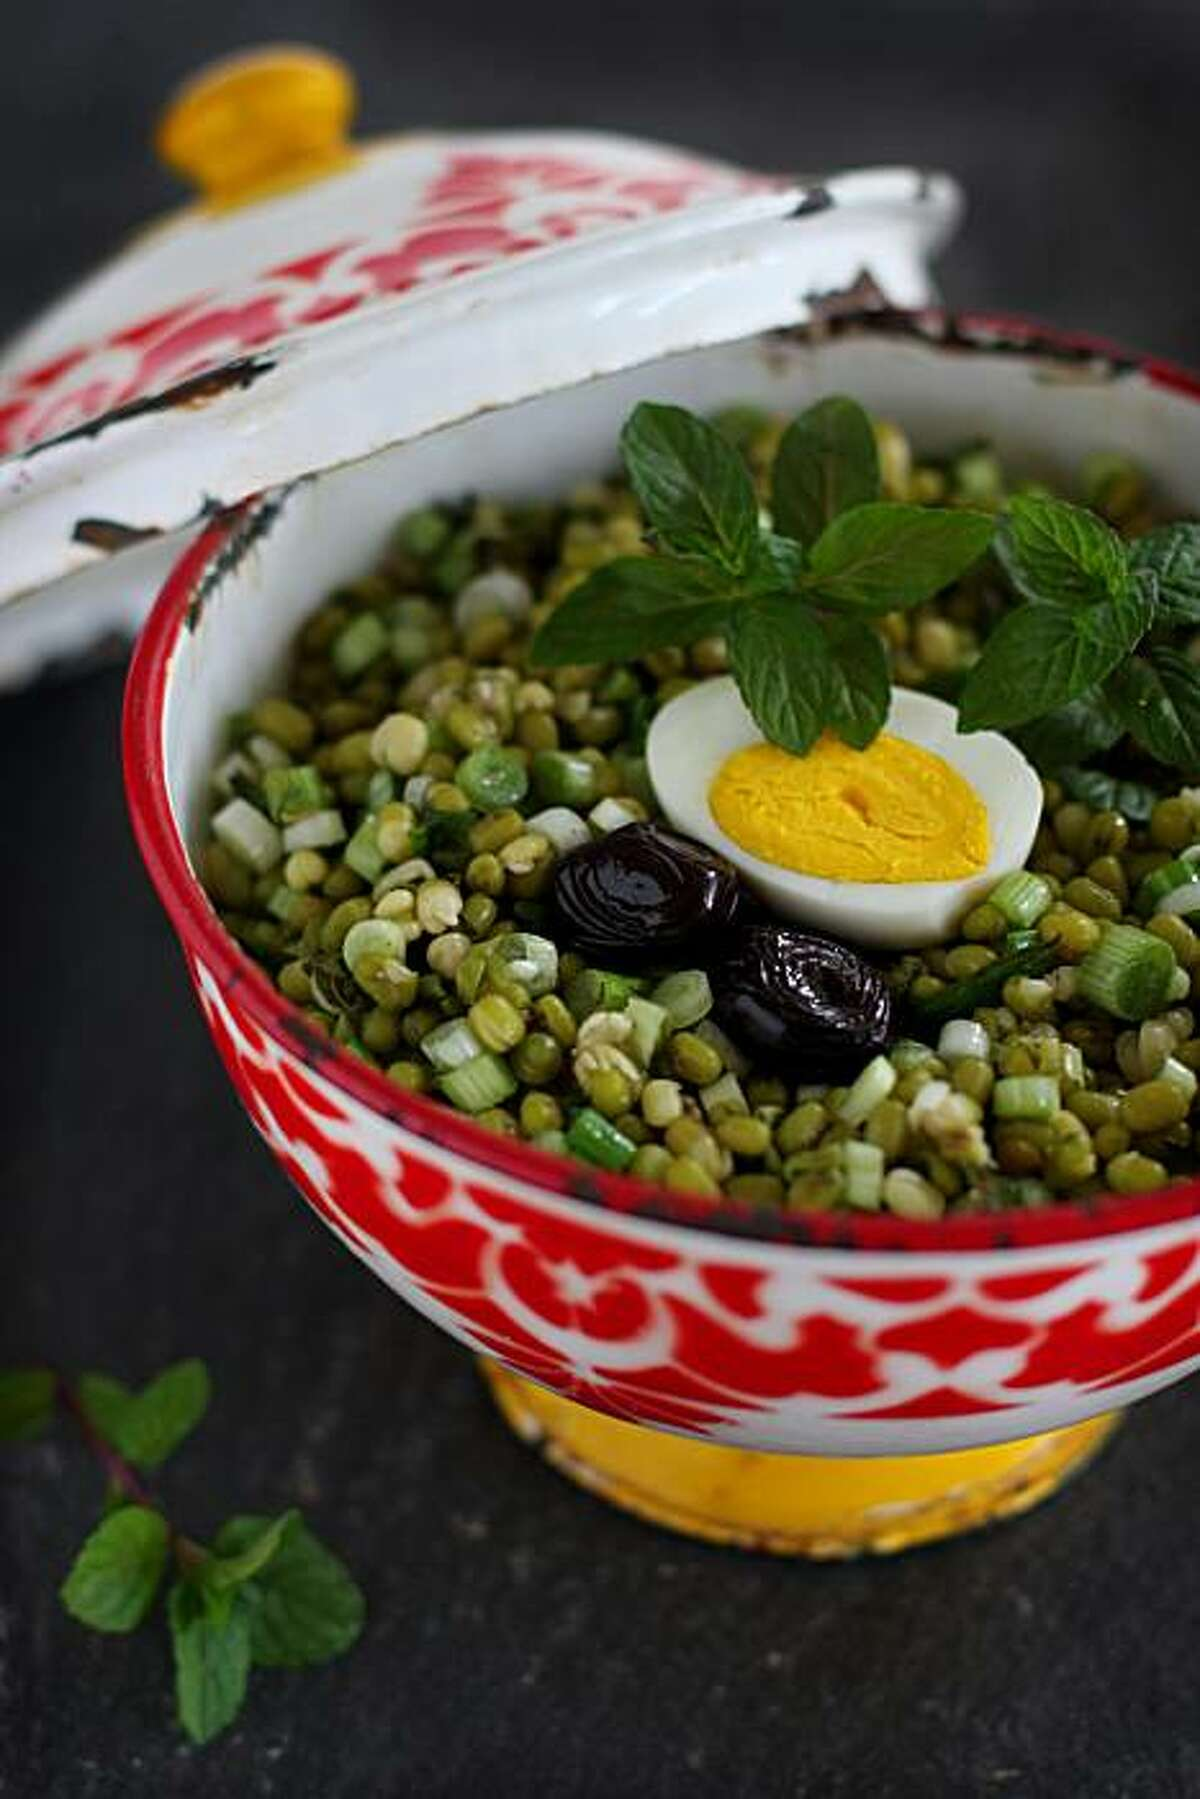 Mung bean salad with scallions and mint